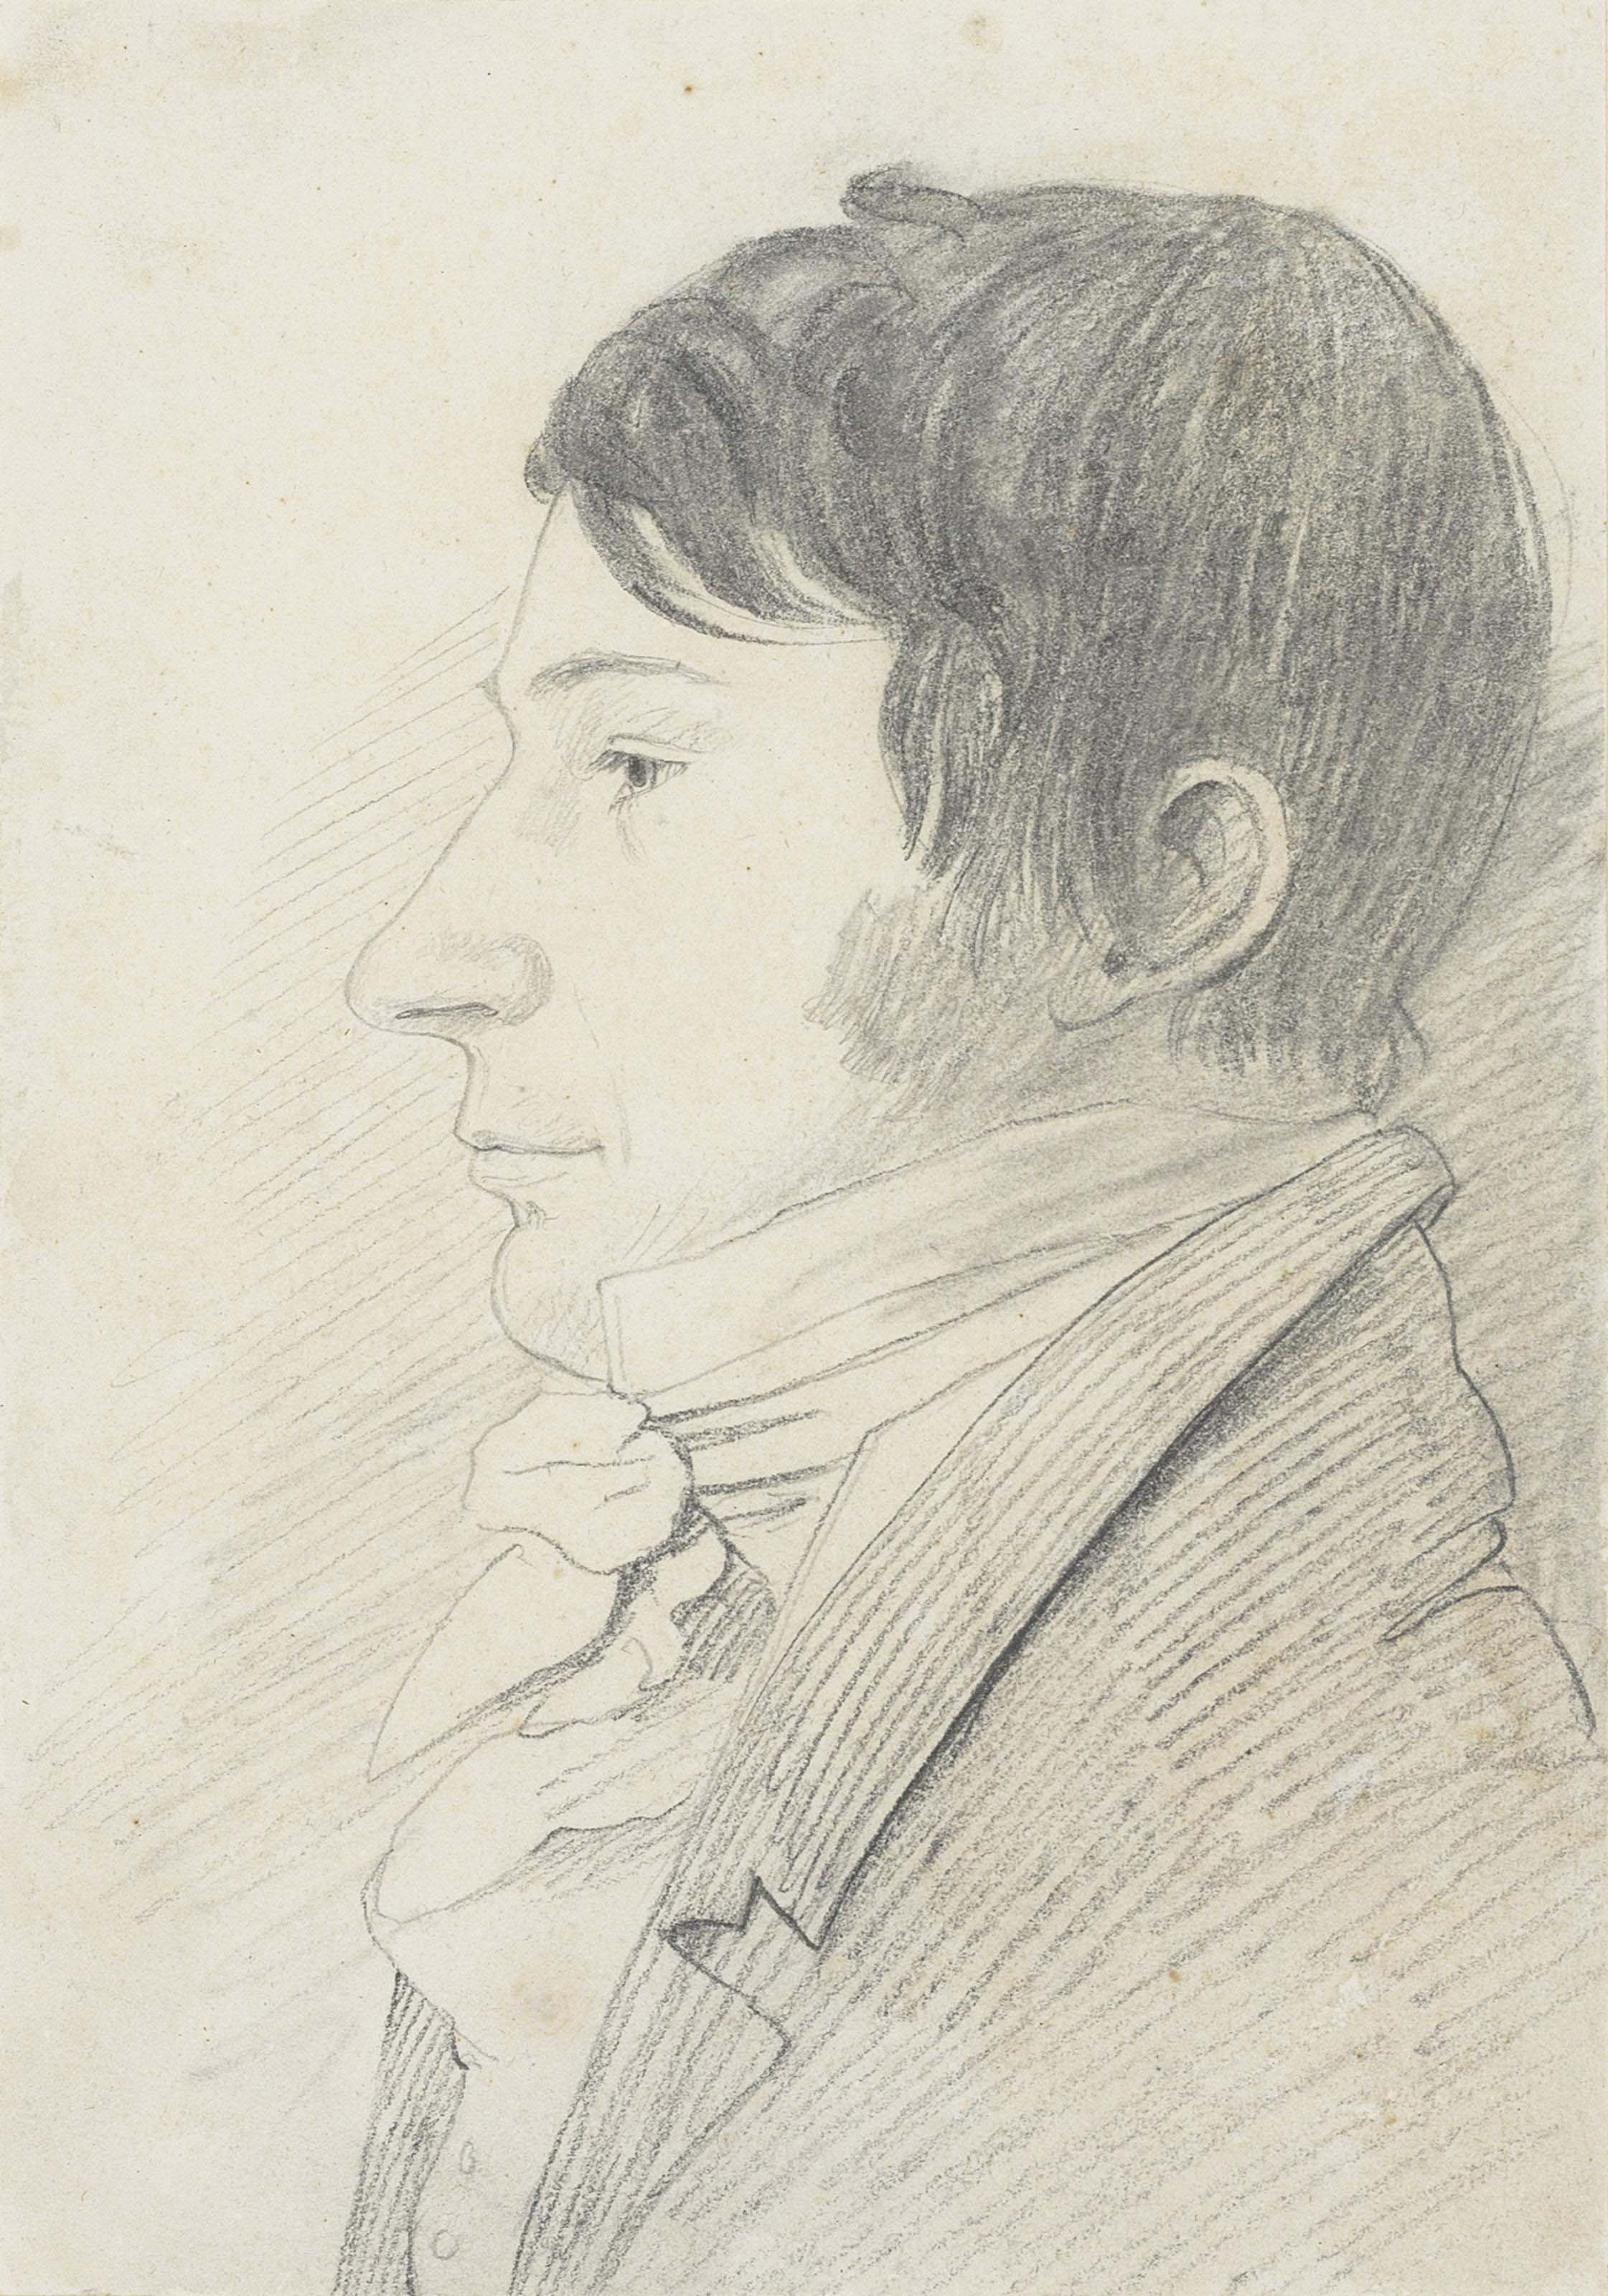 Fifty-four portrait drawings including: John Girtin (b. 1773); Probably Thomas Webster (1800-1886) (illustrated); Delvalle Lowry (1762-1825); Mrs Havell; Mr Hewlett (1768-1826); Mr Wilson Lowry; Mr Blane; Henry Ziegler (1798-1874); Mr Mason; Mr Webster; Mr Sheffield; Colonel Landman; John Fleetwood and others